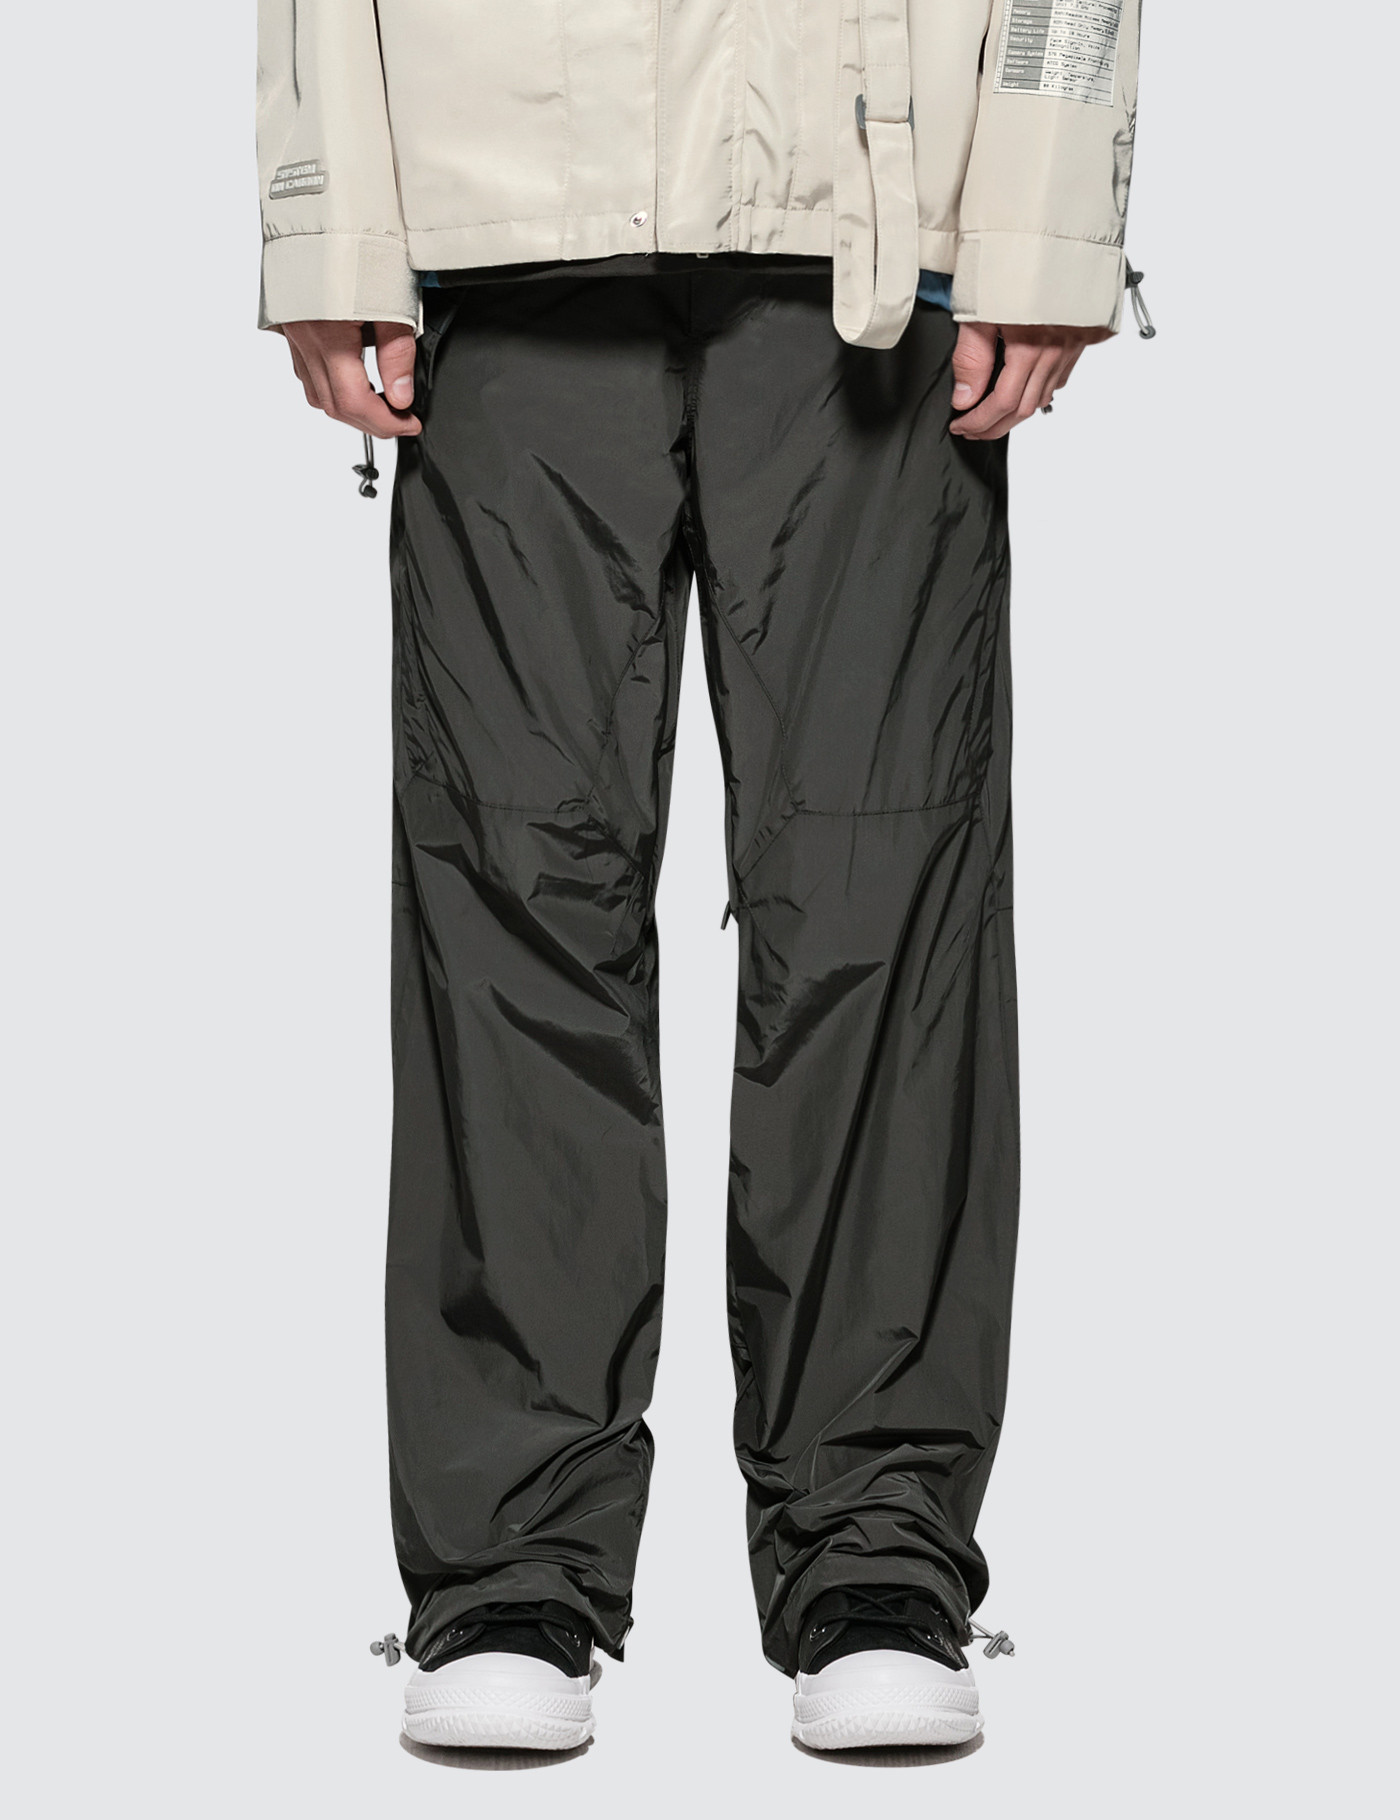 Human Tech Specs Technical Pants With Utility Pockets, C2H4 Los Angeles